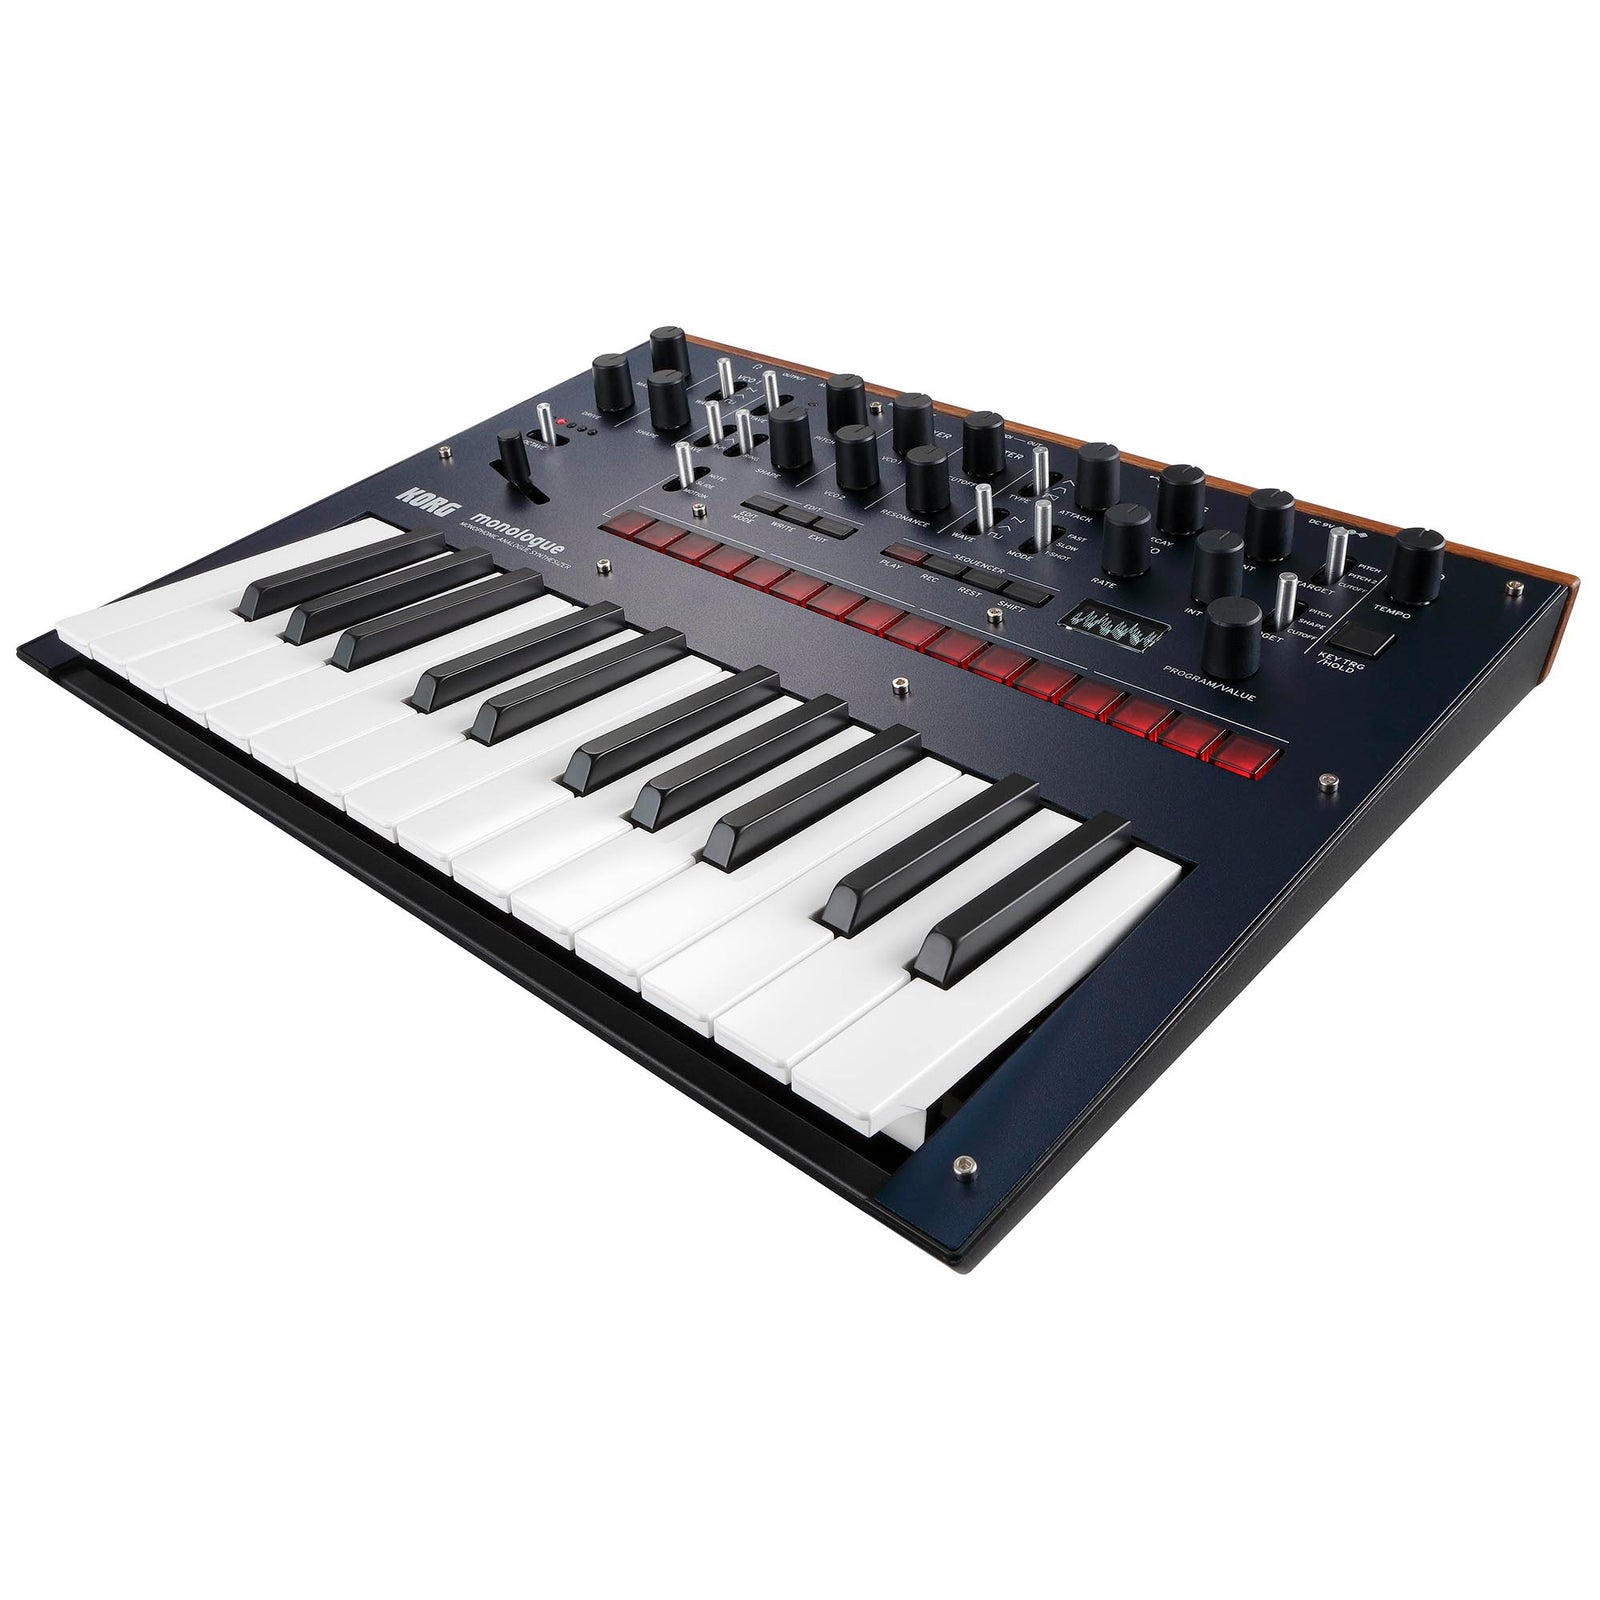 Korg Monologue Monophonic Analog Synthesizer With Presets - Blue